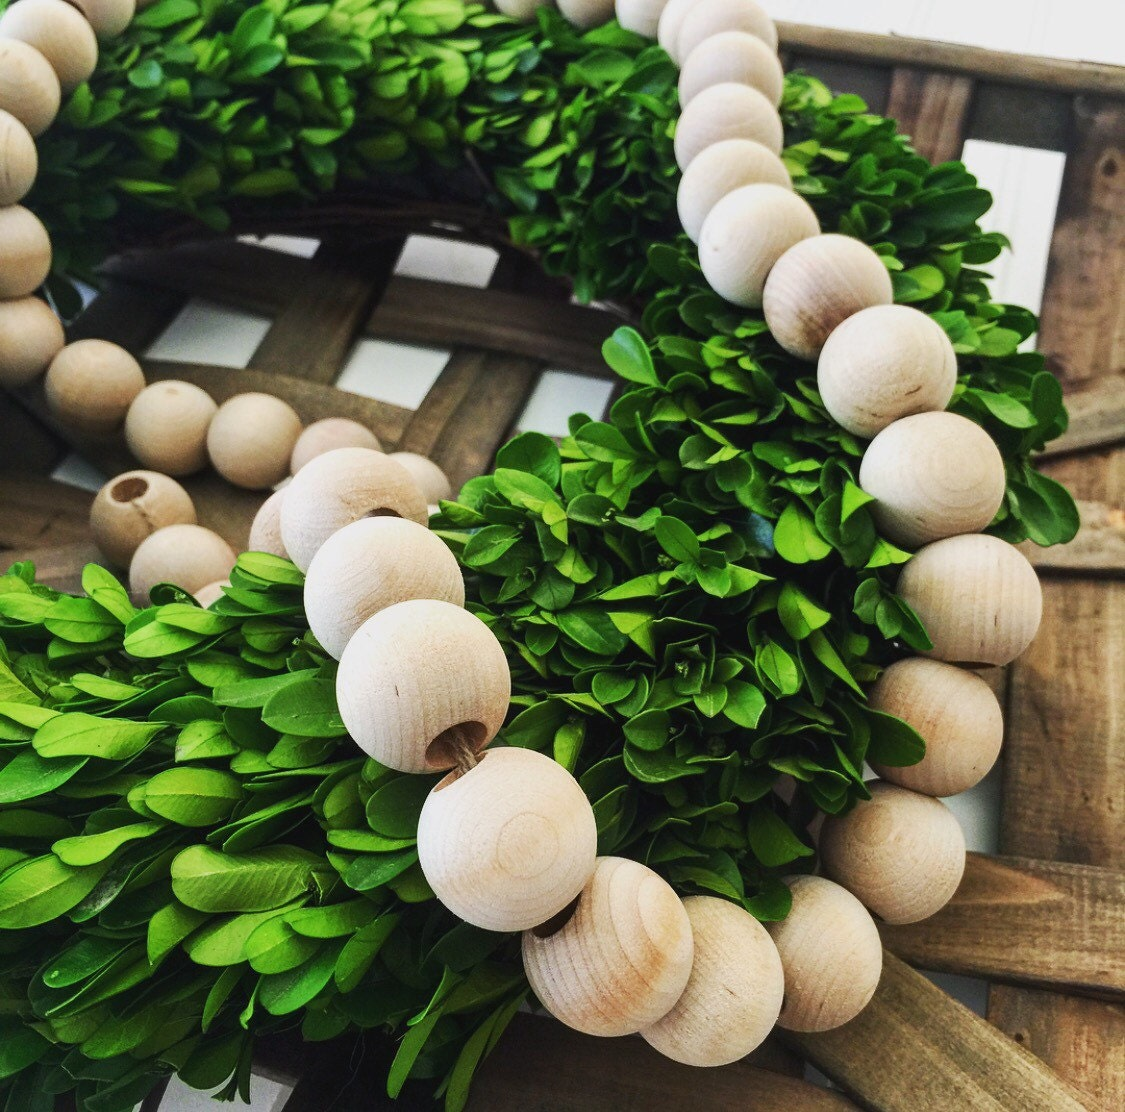 Free Shipping Unfinished Natural Wood Bead Garland on Jute Twine One Inch Diameter Four Feet Long Magnolia Market Inspired Farmhouse